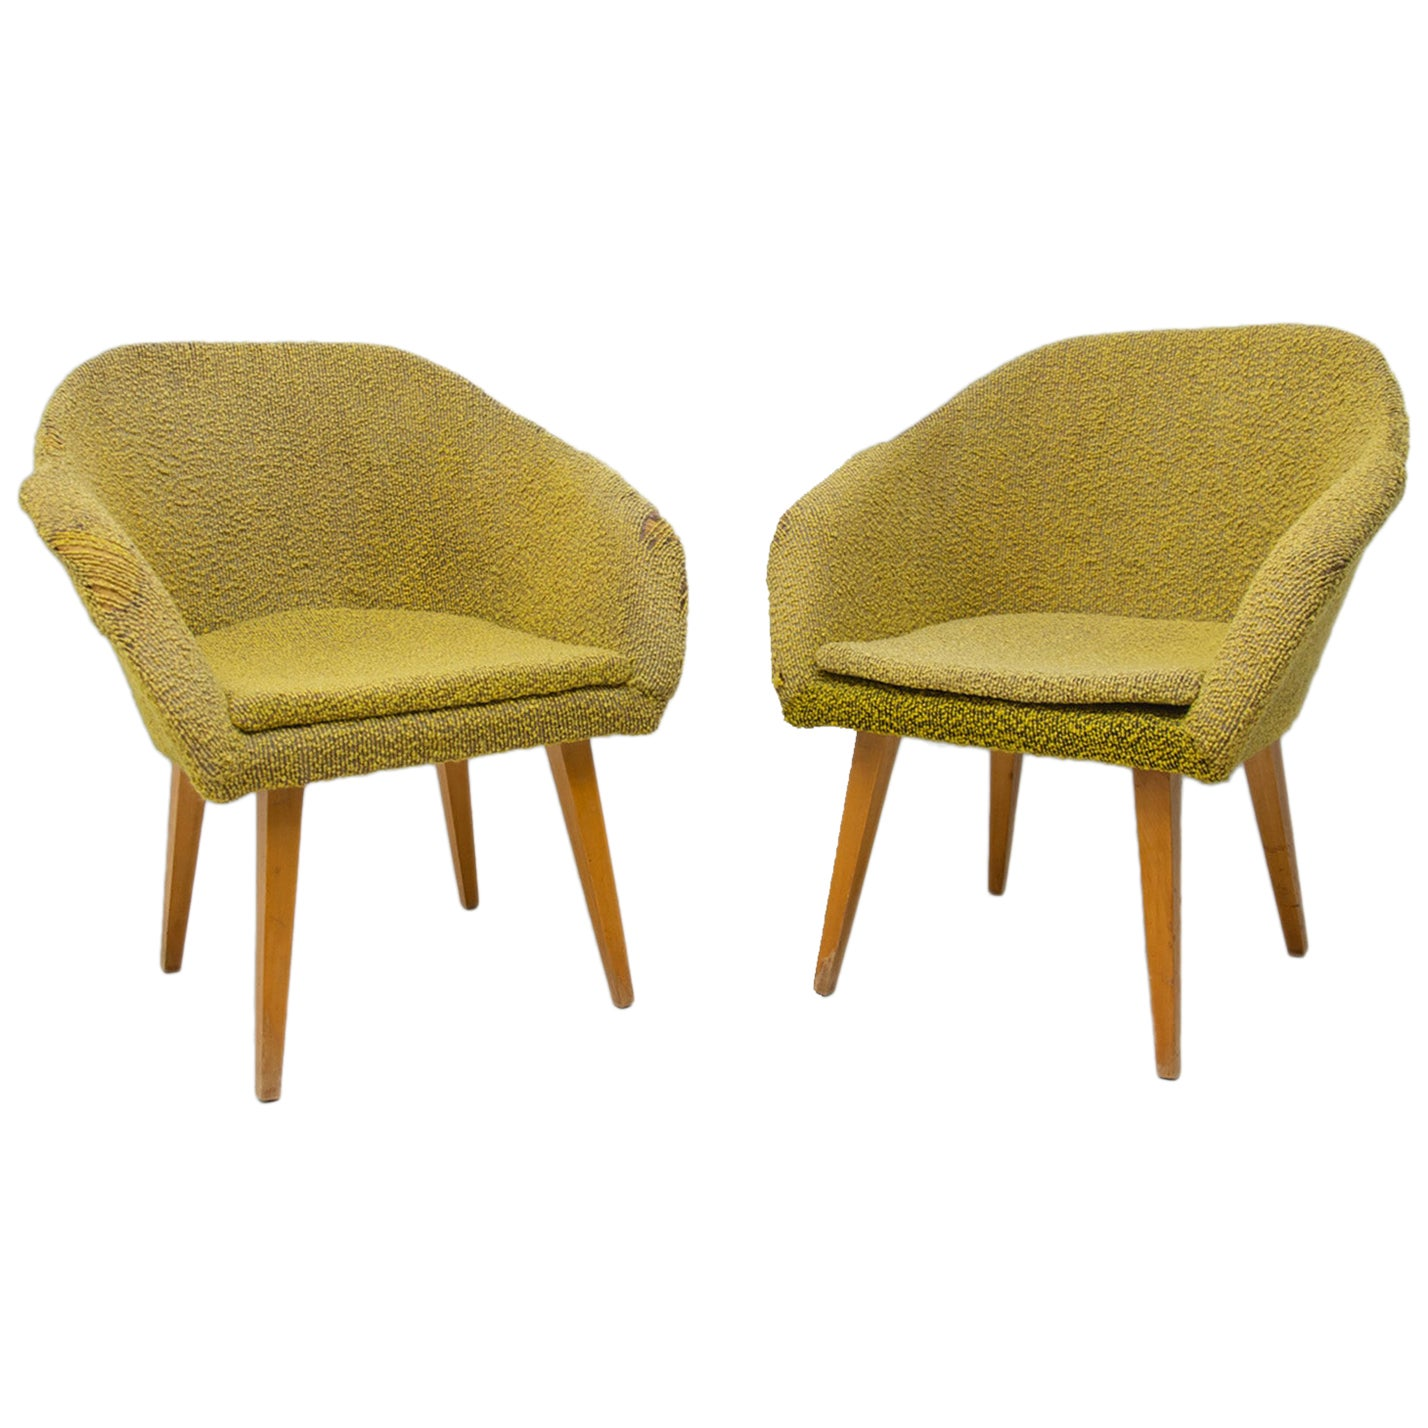 Pair of Midcentury Shell Fiberglass Lounge Chairs, Czechoslovakia, 1960s